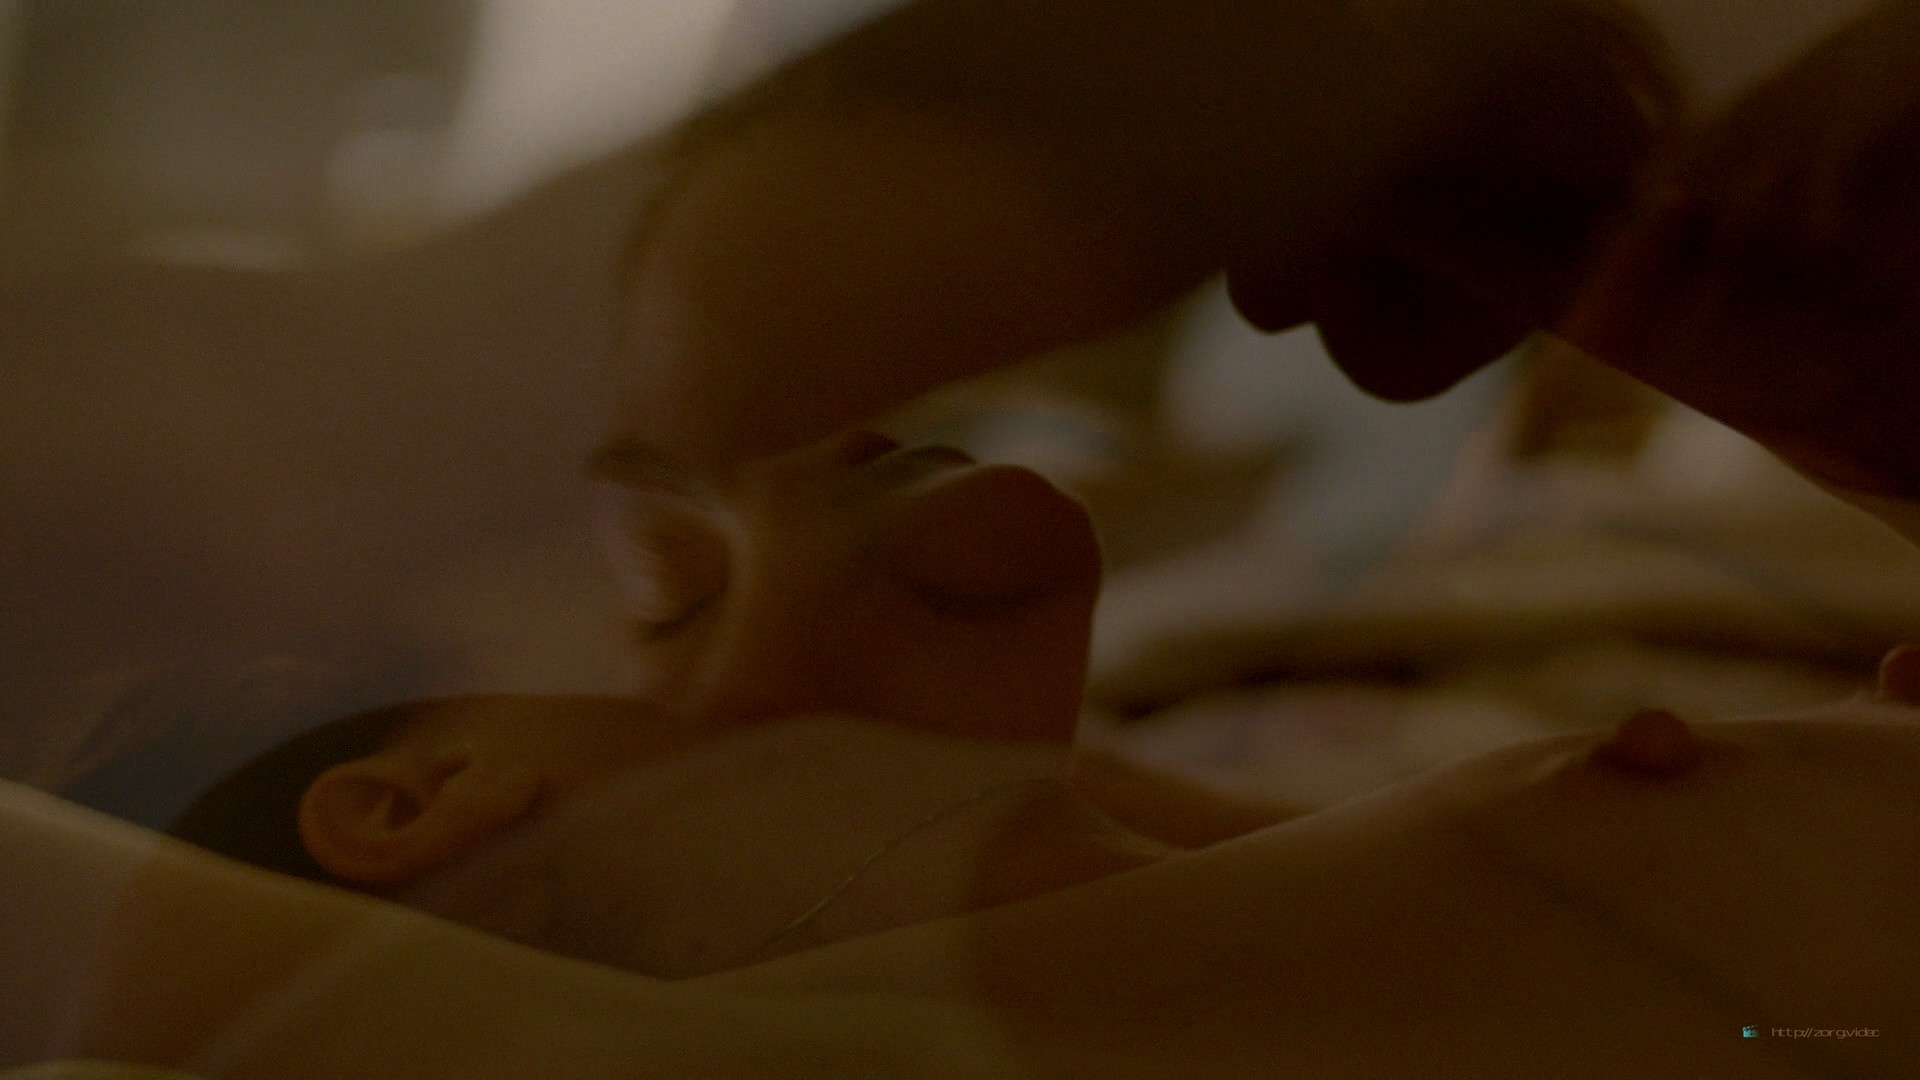 Michelle Monaghan nude brief topless and sex - True Detective (2014) S01 HD 1080p BluRay (10)